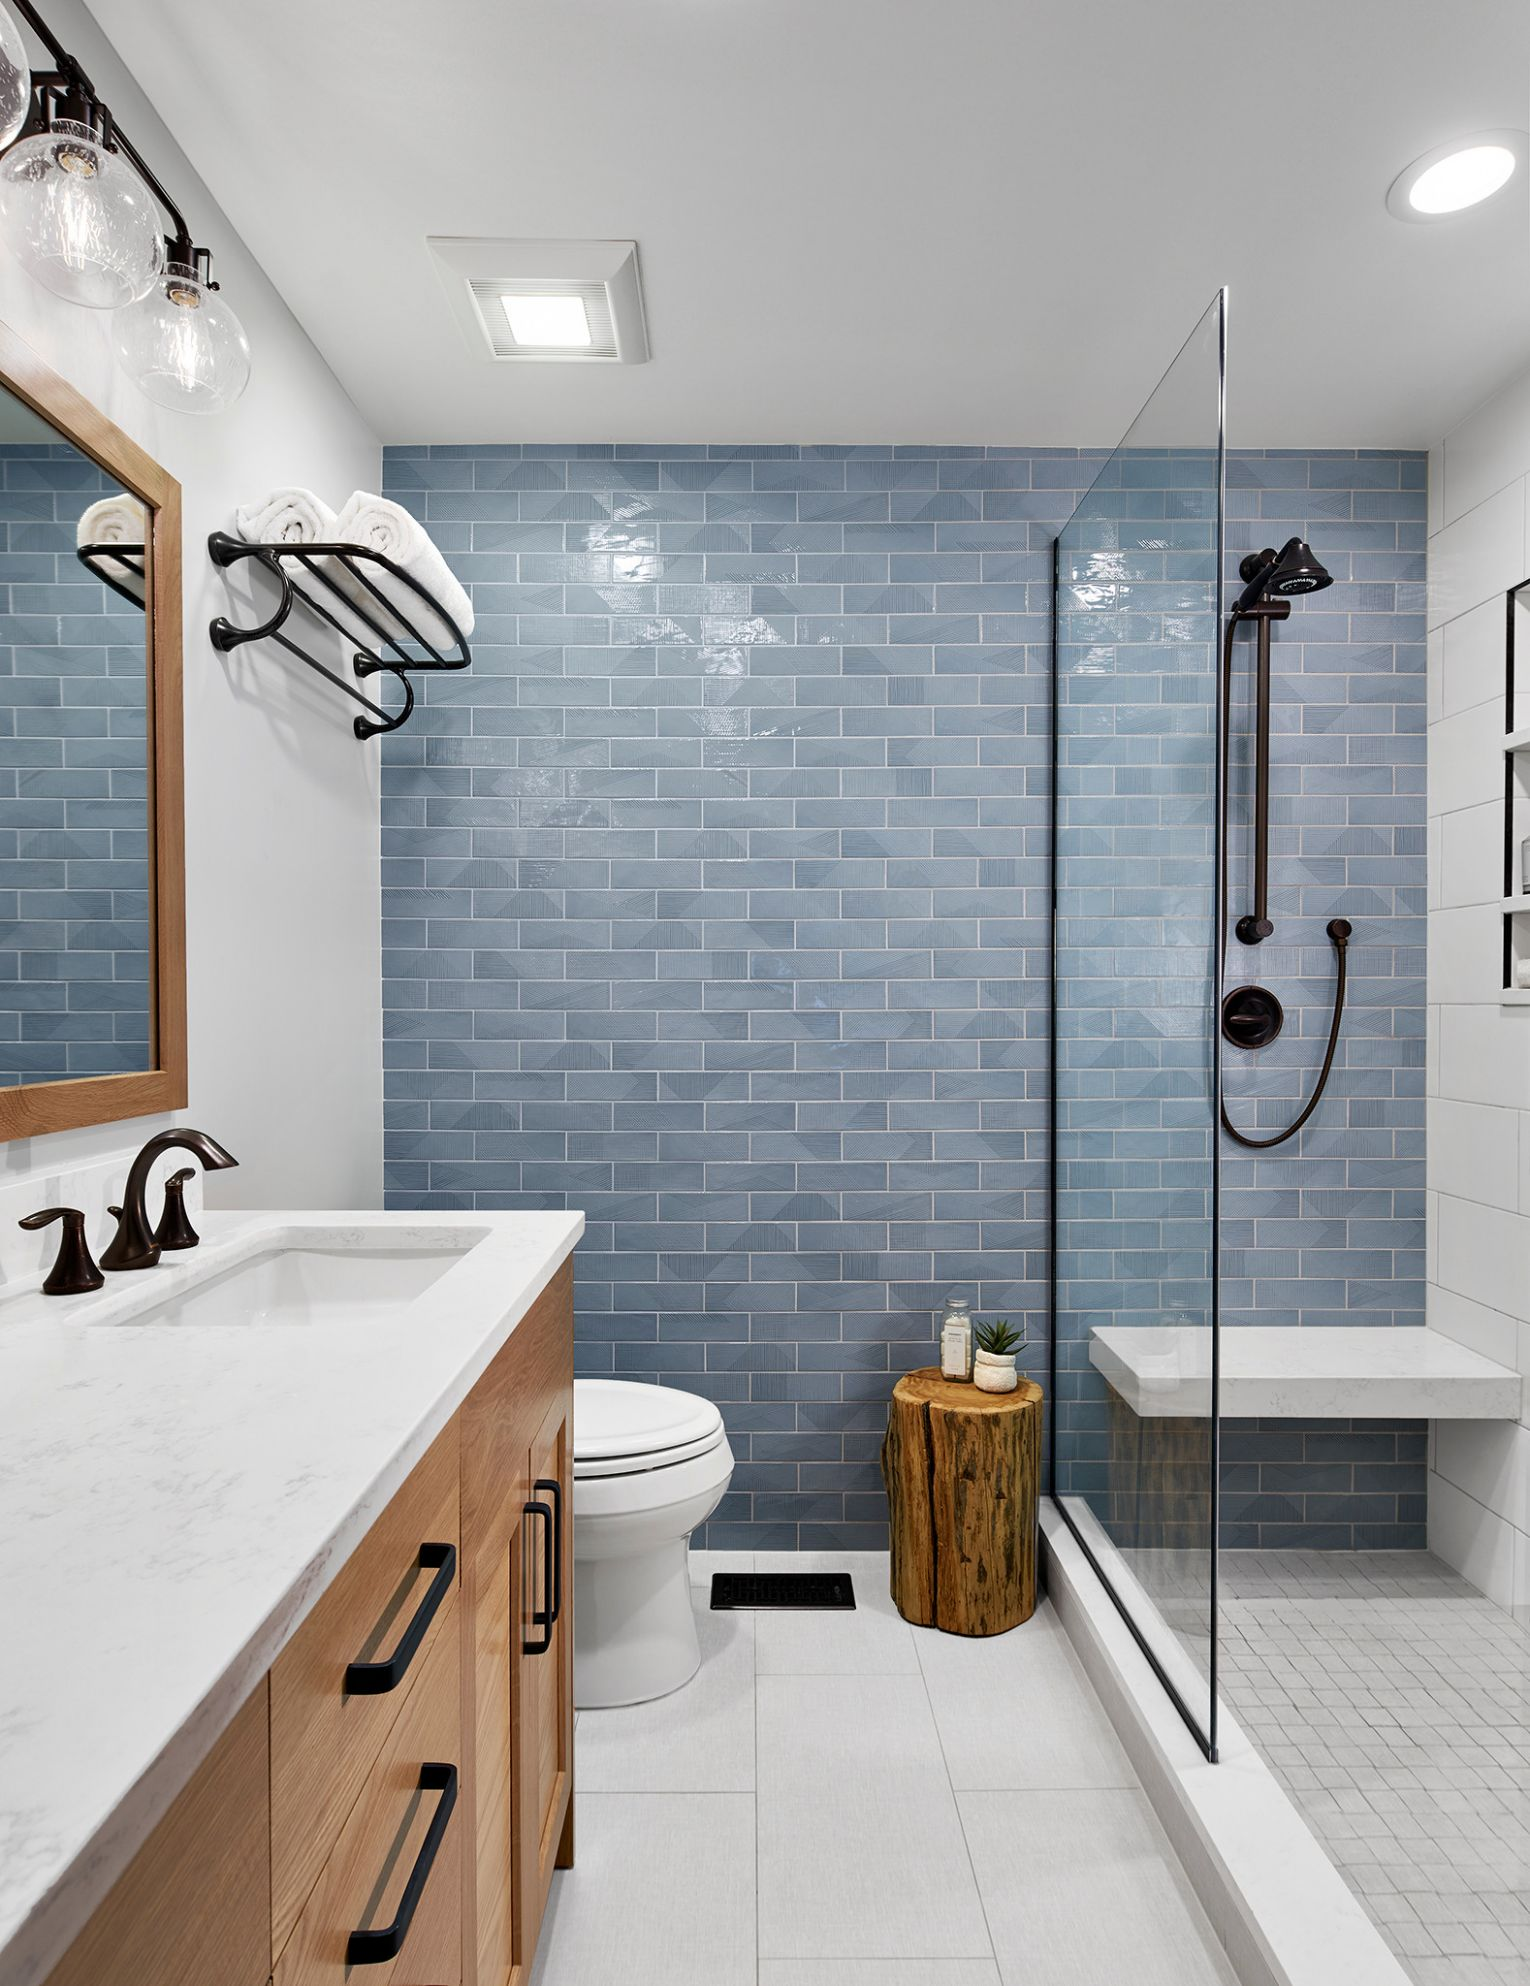 11 Beautiful Bath Pictures & Ideas | Houzz